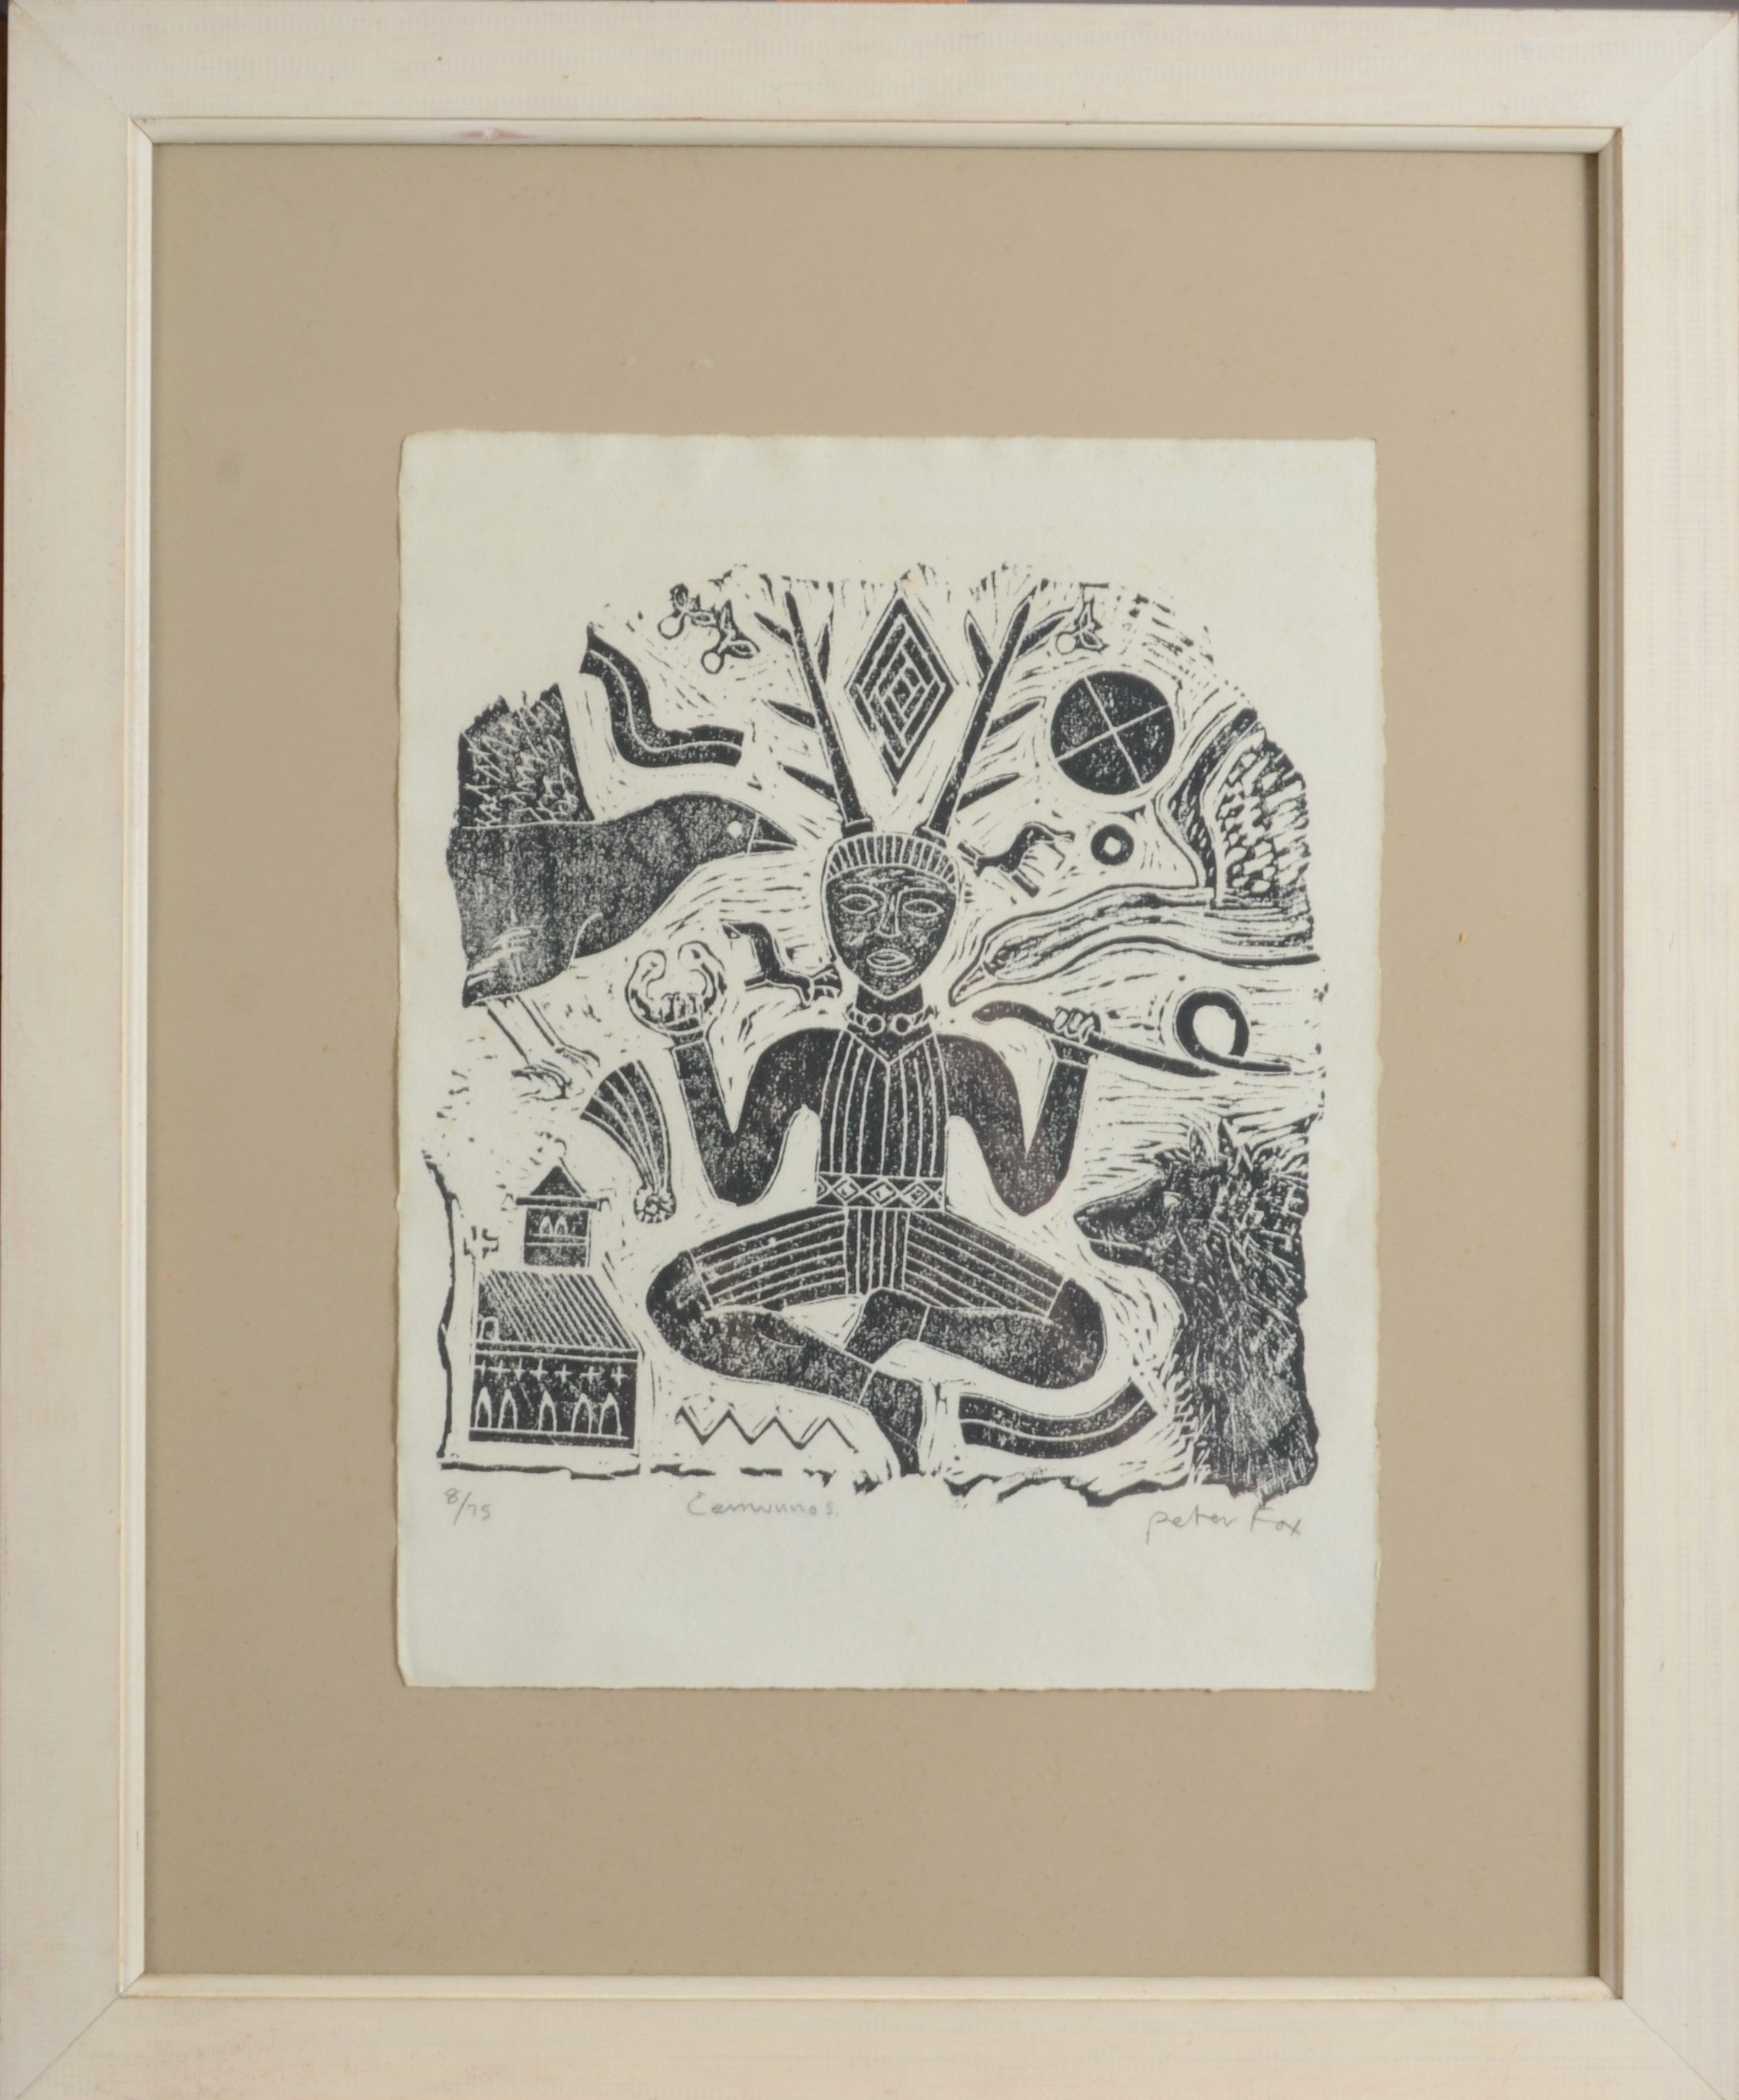 Lot 23 - PETER FOX Cernunnos Stone cut print Signed and titled Numbered 8/75 33 x 26 cm Plus two other